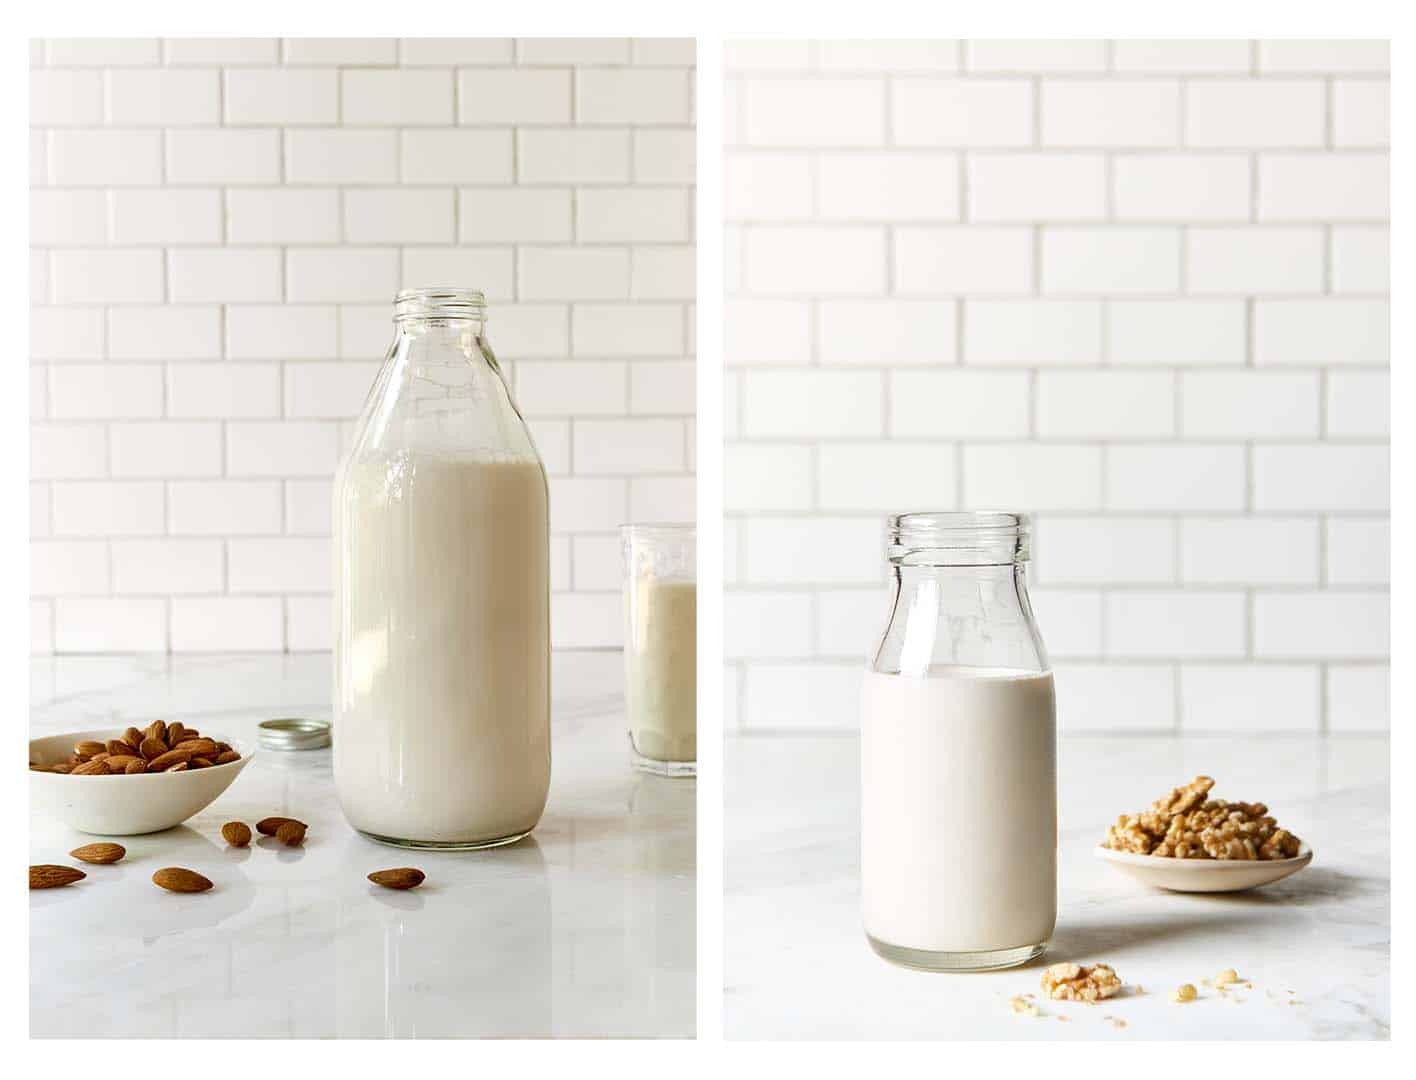 Plant Based Milk and Nut Milk - How To Make Them - The